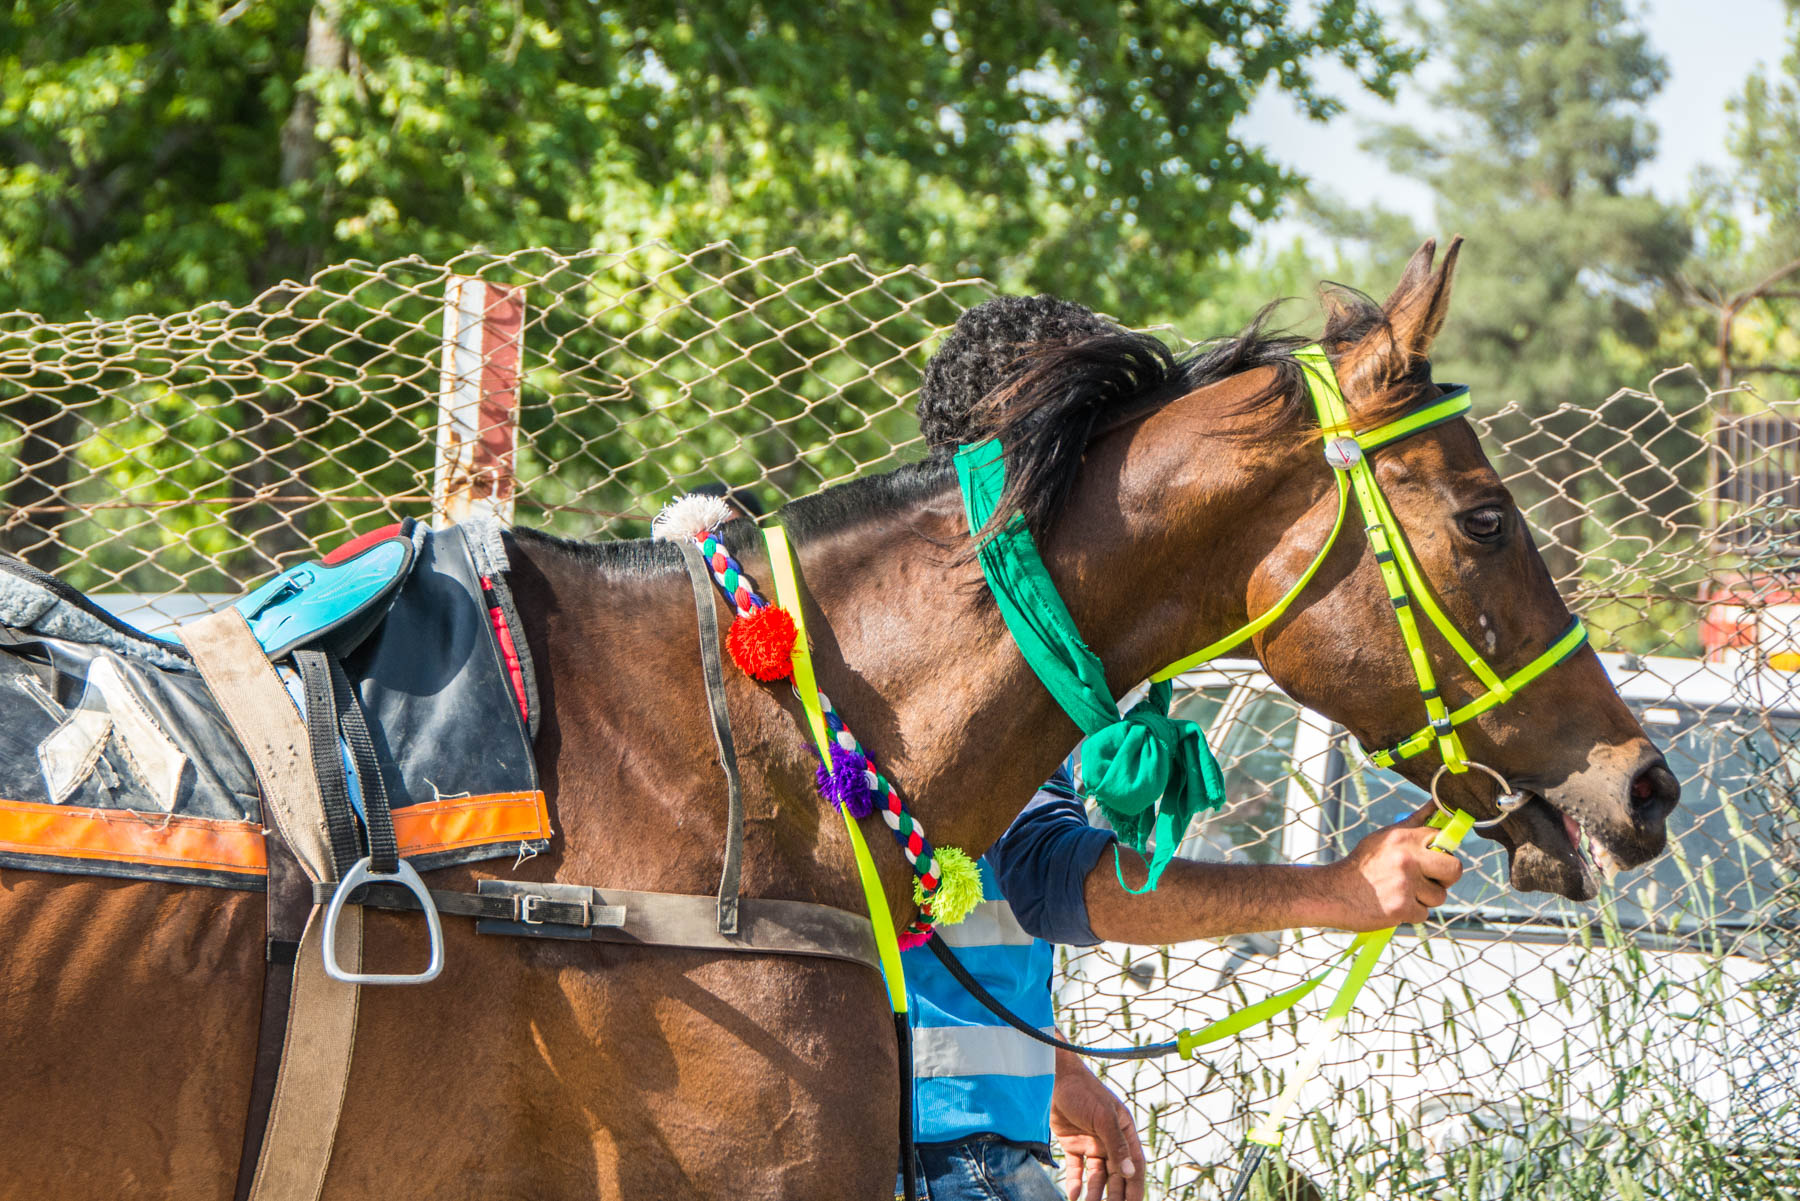 Horse being led at the races in Gonbad Kavus, Iran